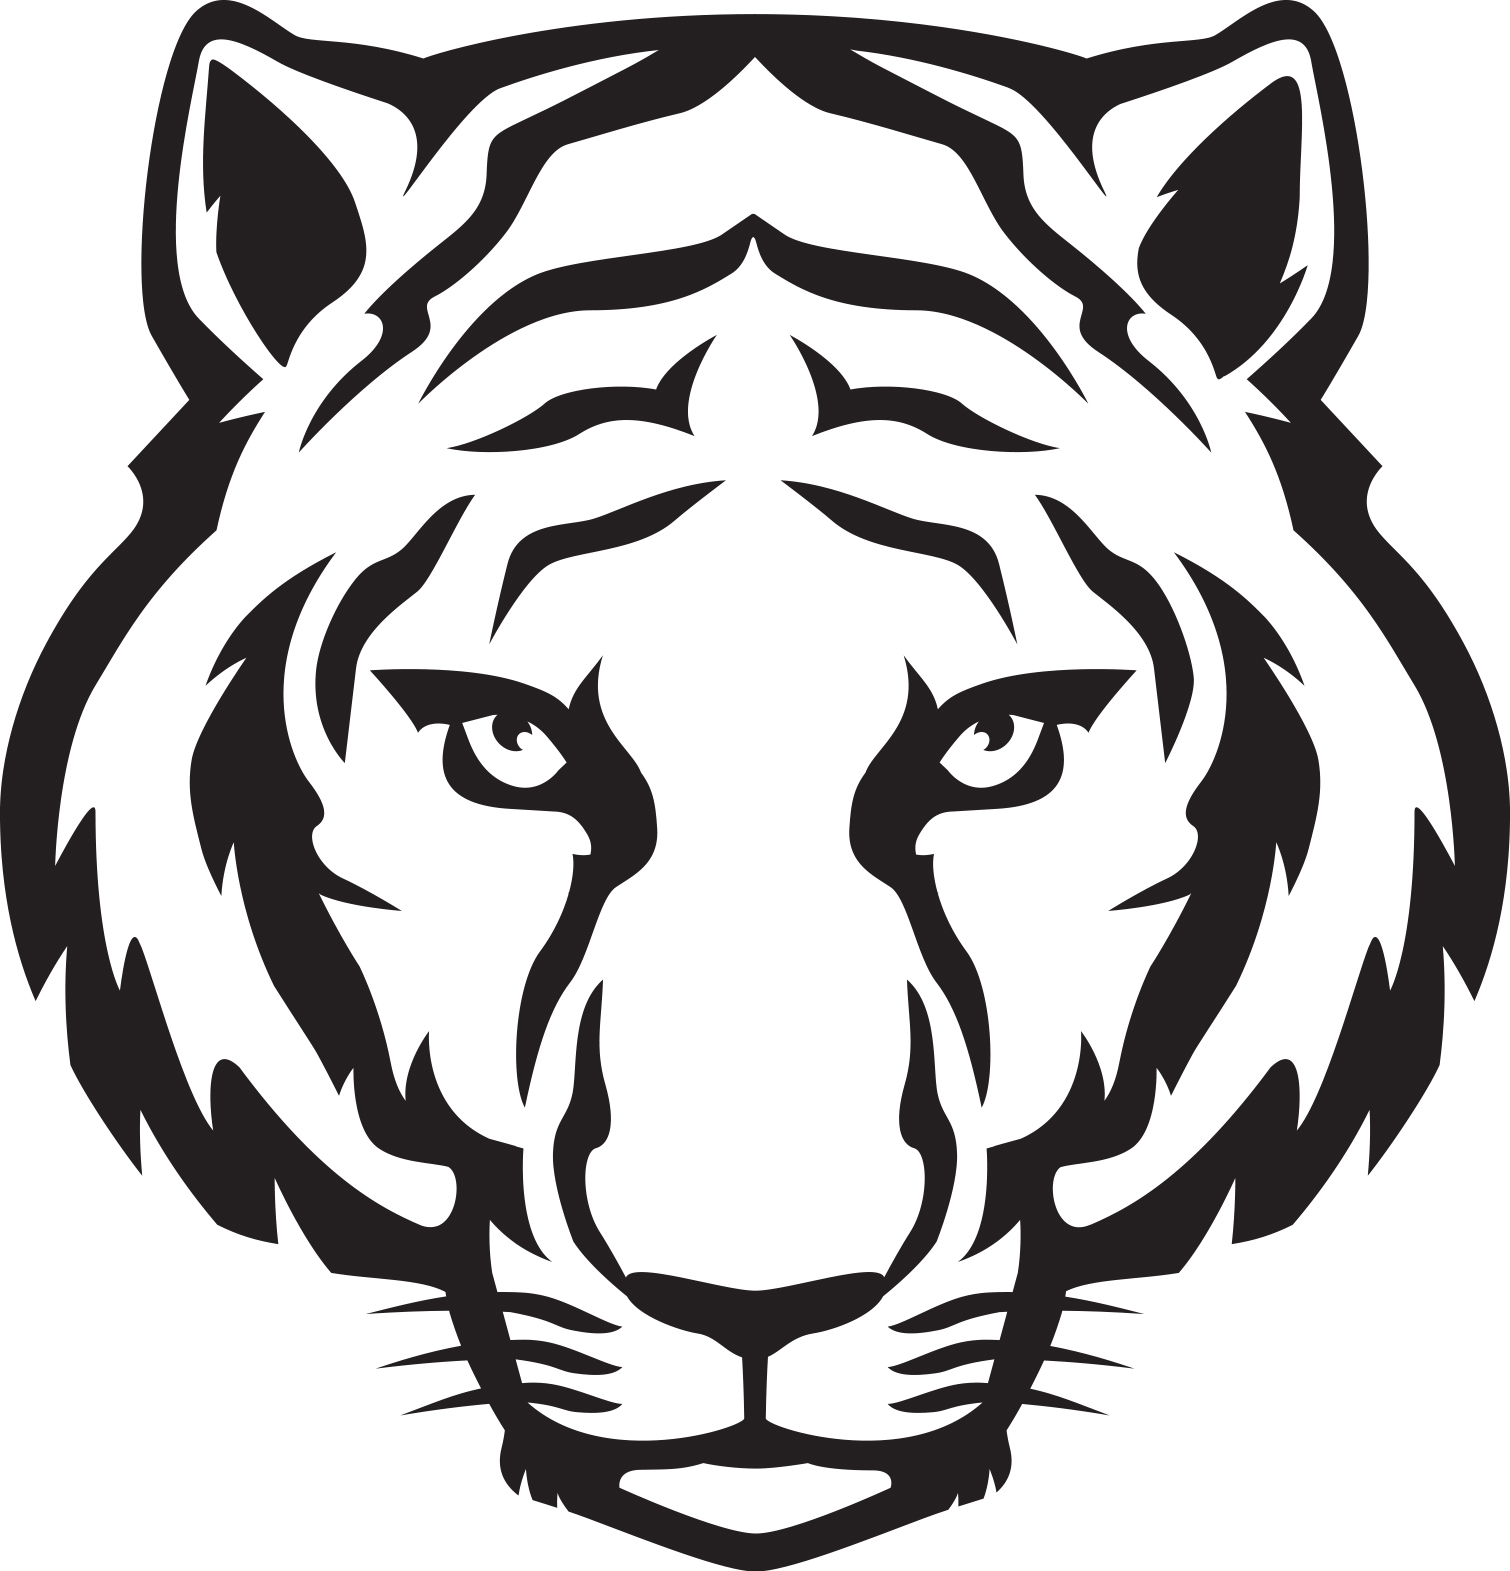 Tiger Face Clipart tiger%20face%20clip%20art%20black%20and%20white